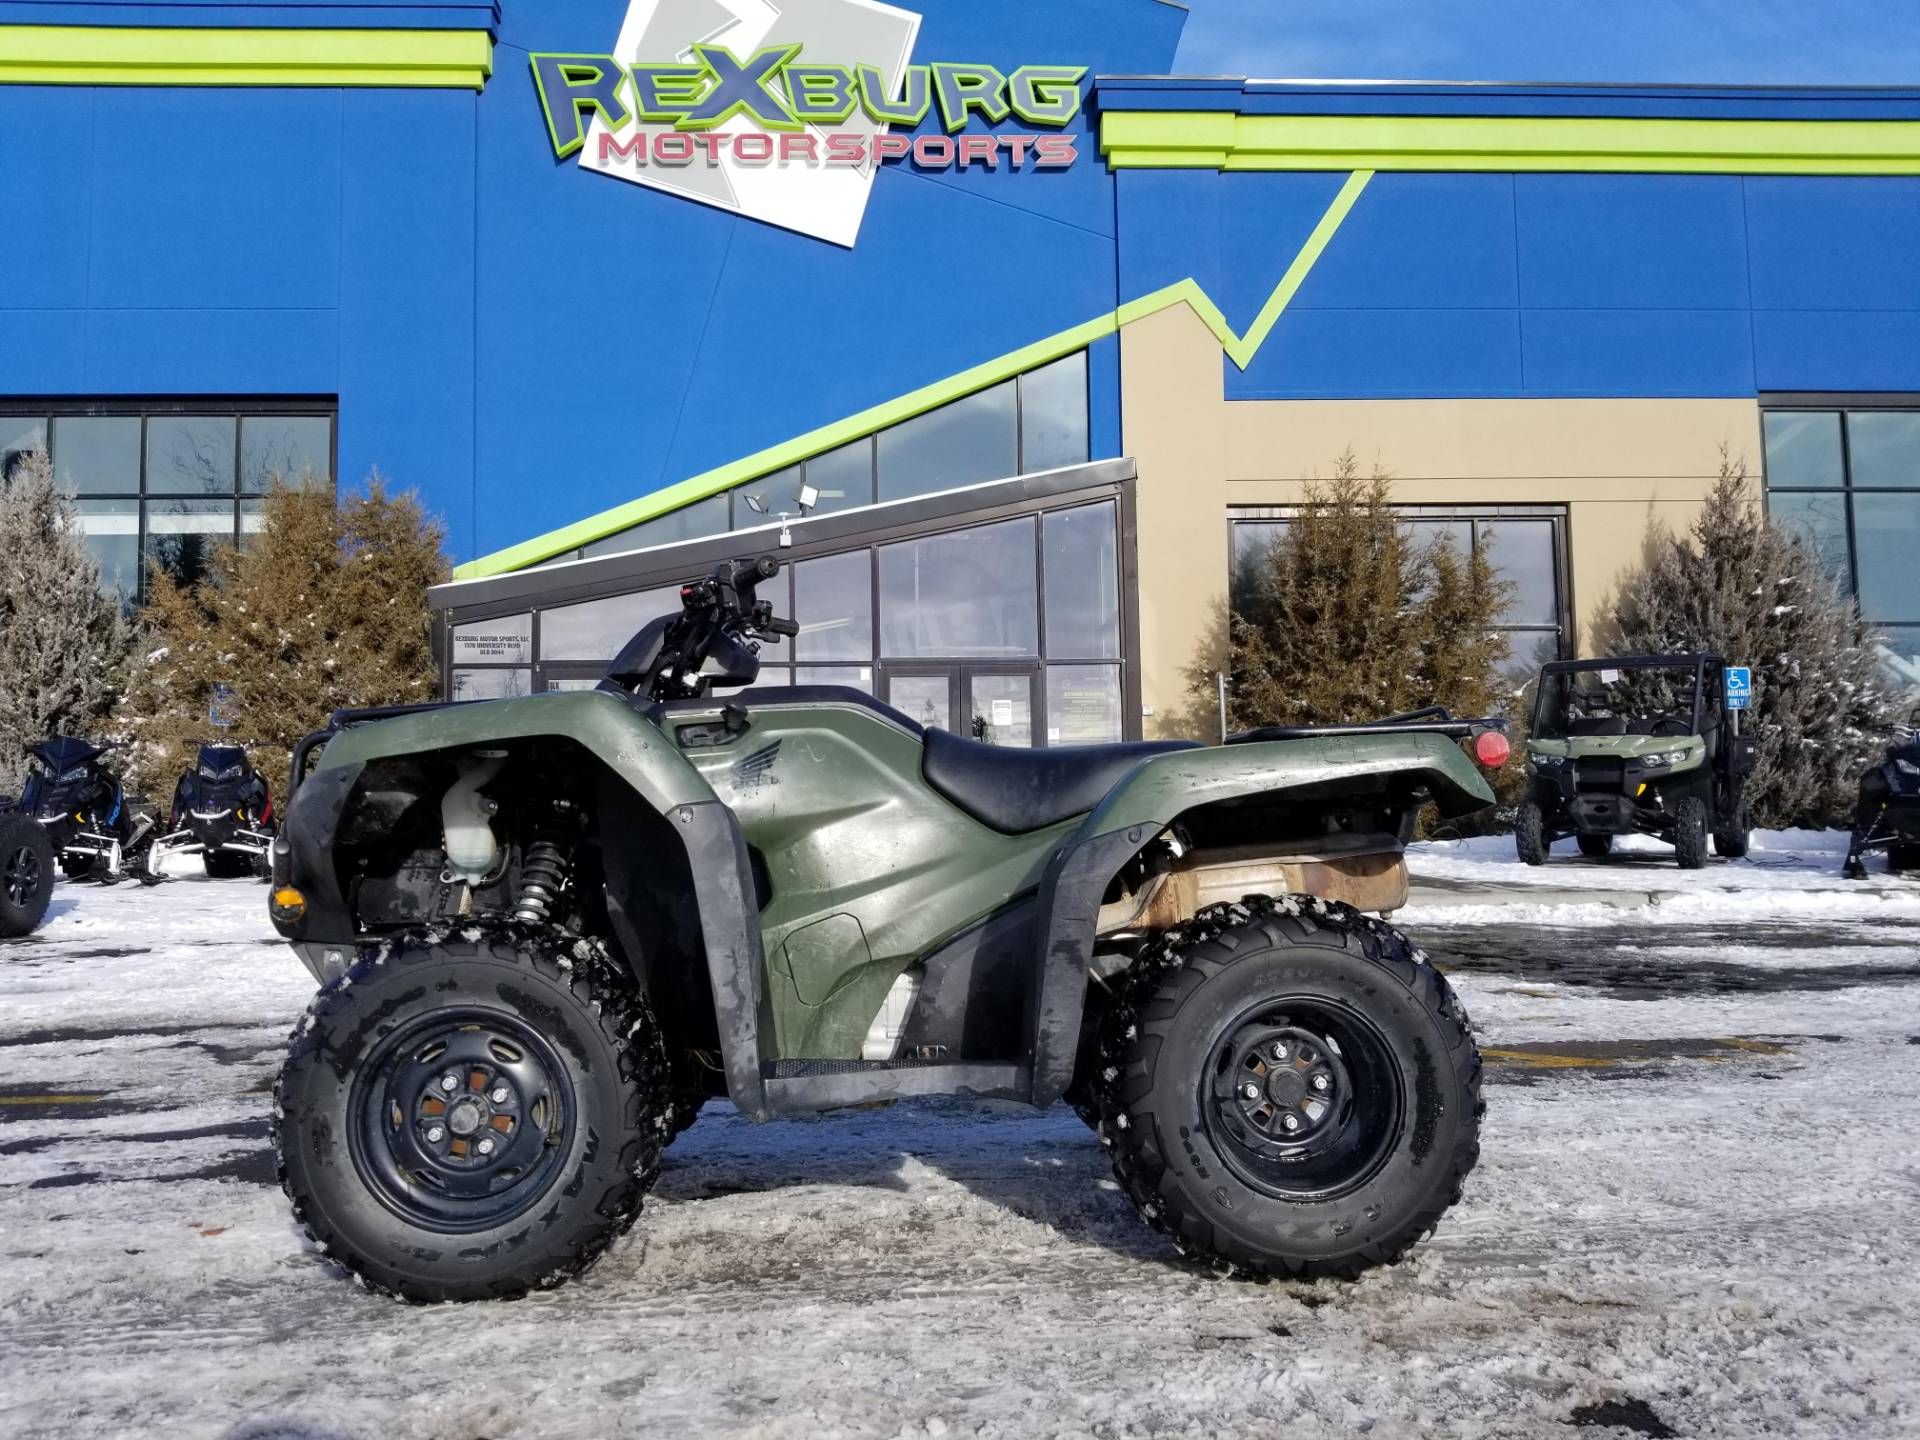 2019 Honda FourTrax Rancher 4x4 ES in Rexburg, Idaho - Photo 1